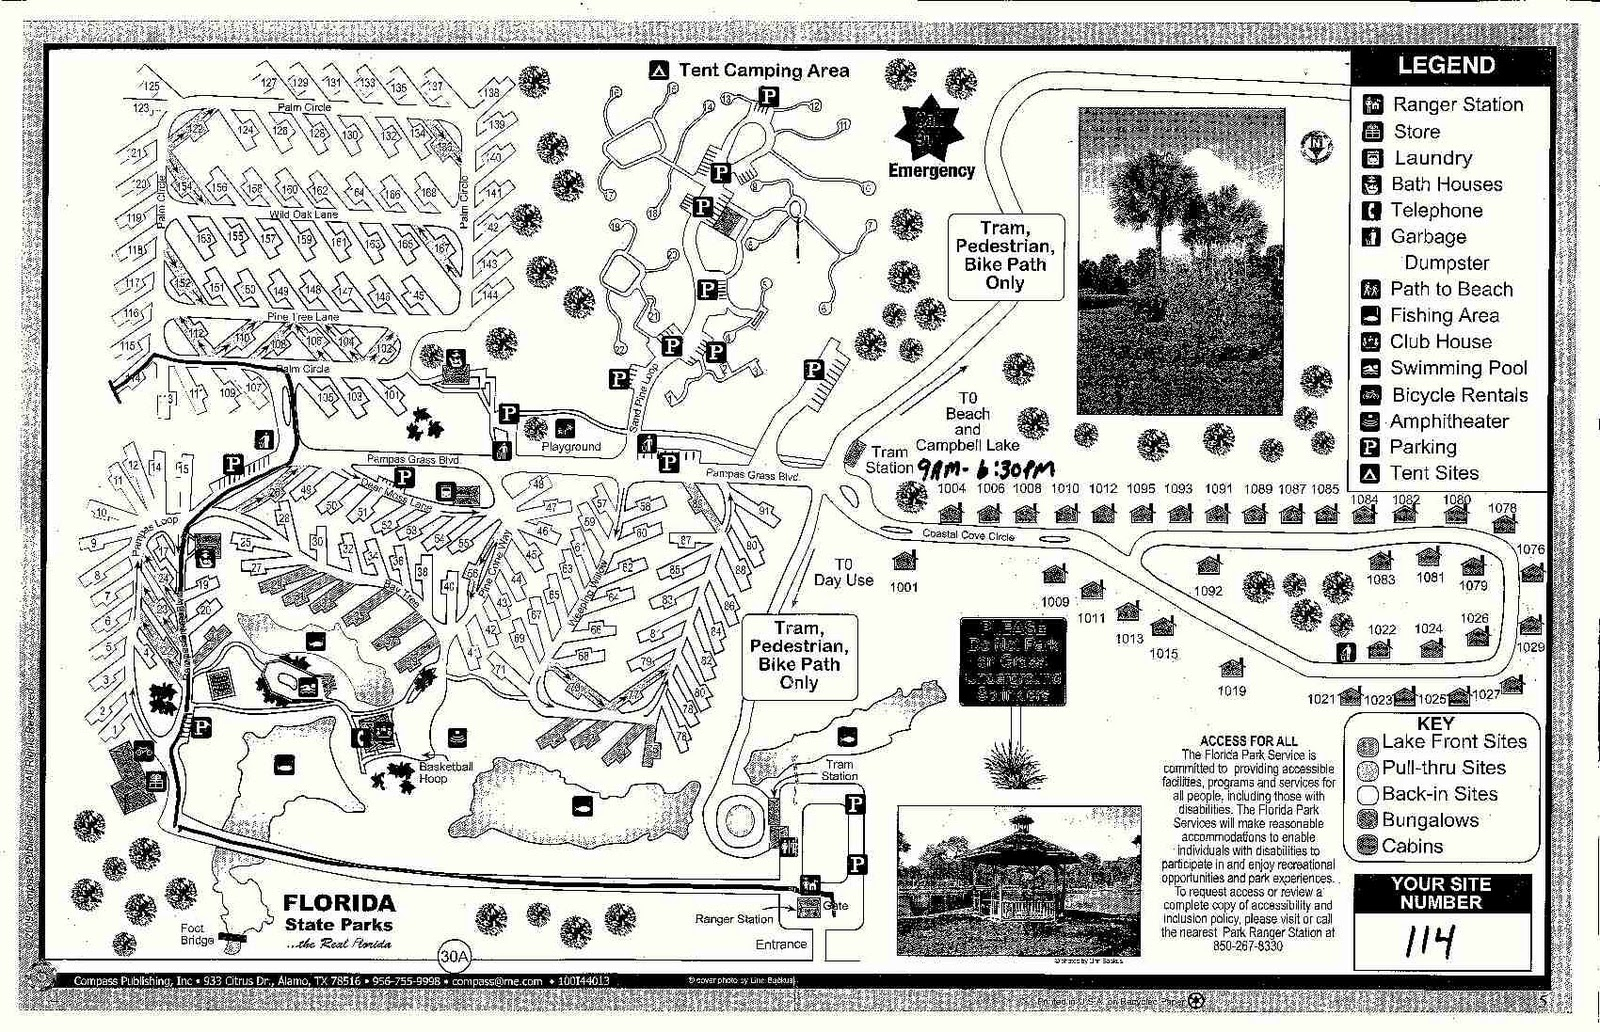 Camping Info The Stuff You Need To Know Topsail Hill Preserve - Florida map state parks